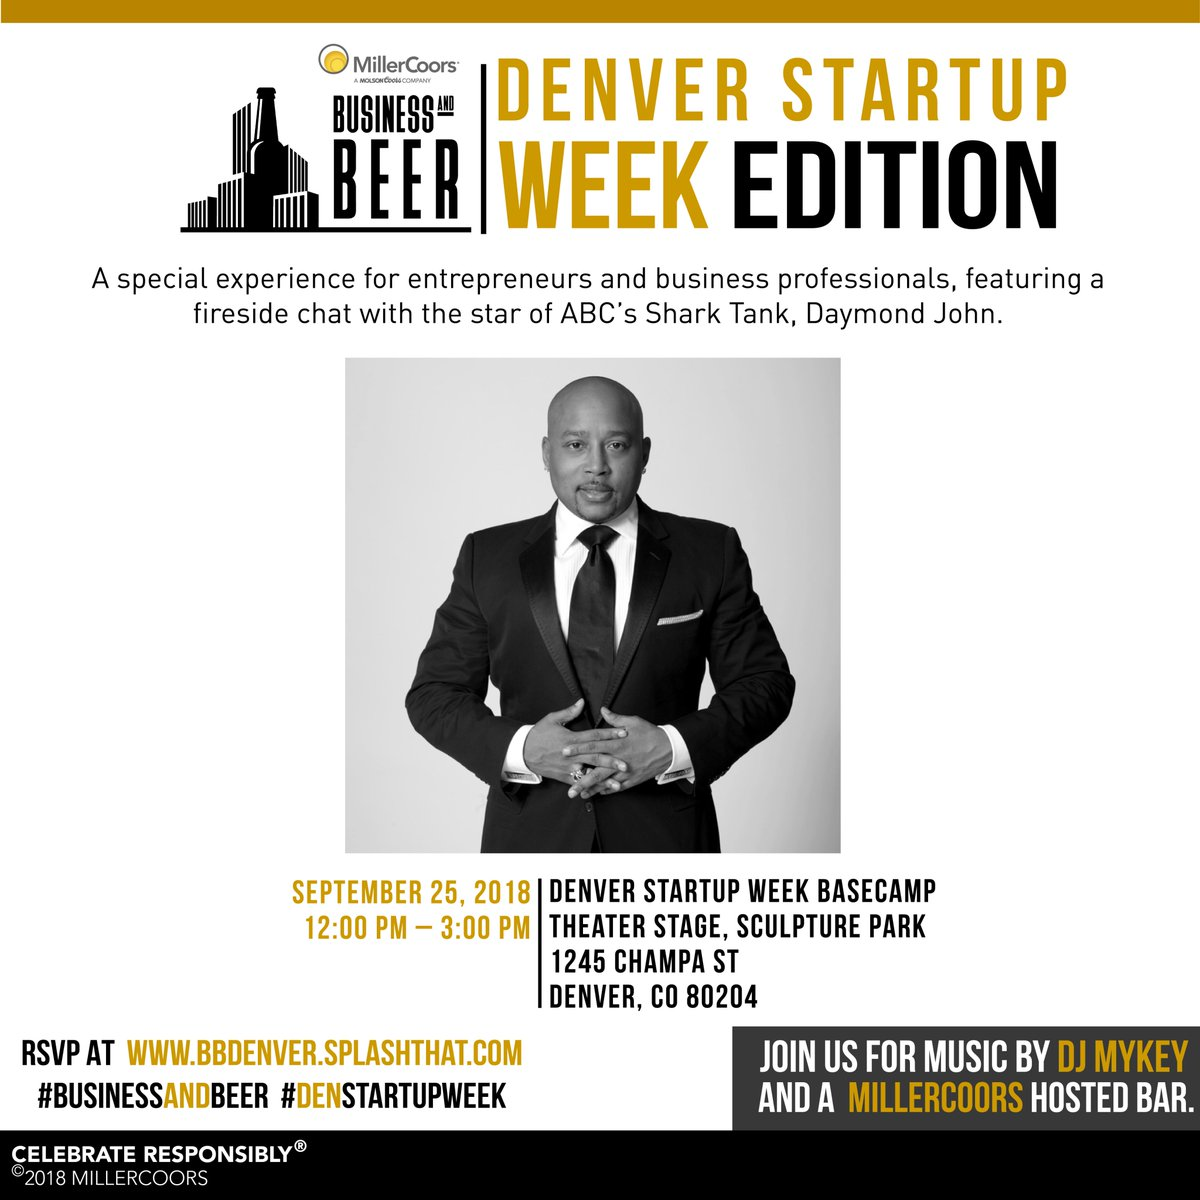 Denver startup week on twitter do you want to meet do you want to meet thesharkdaymond we are giving away 5 meet and greets after his denstartupweek session click here for the rules m4hsunfo